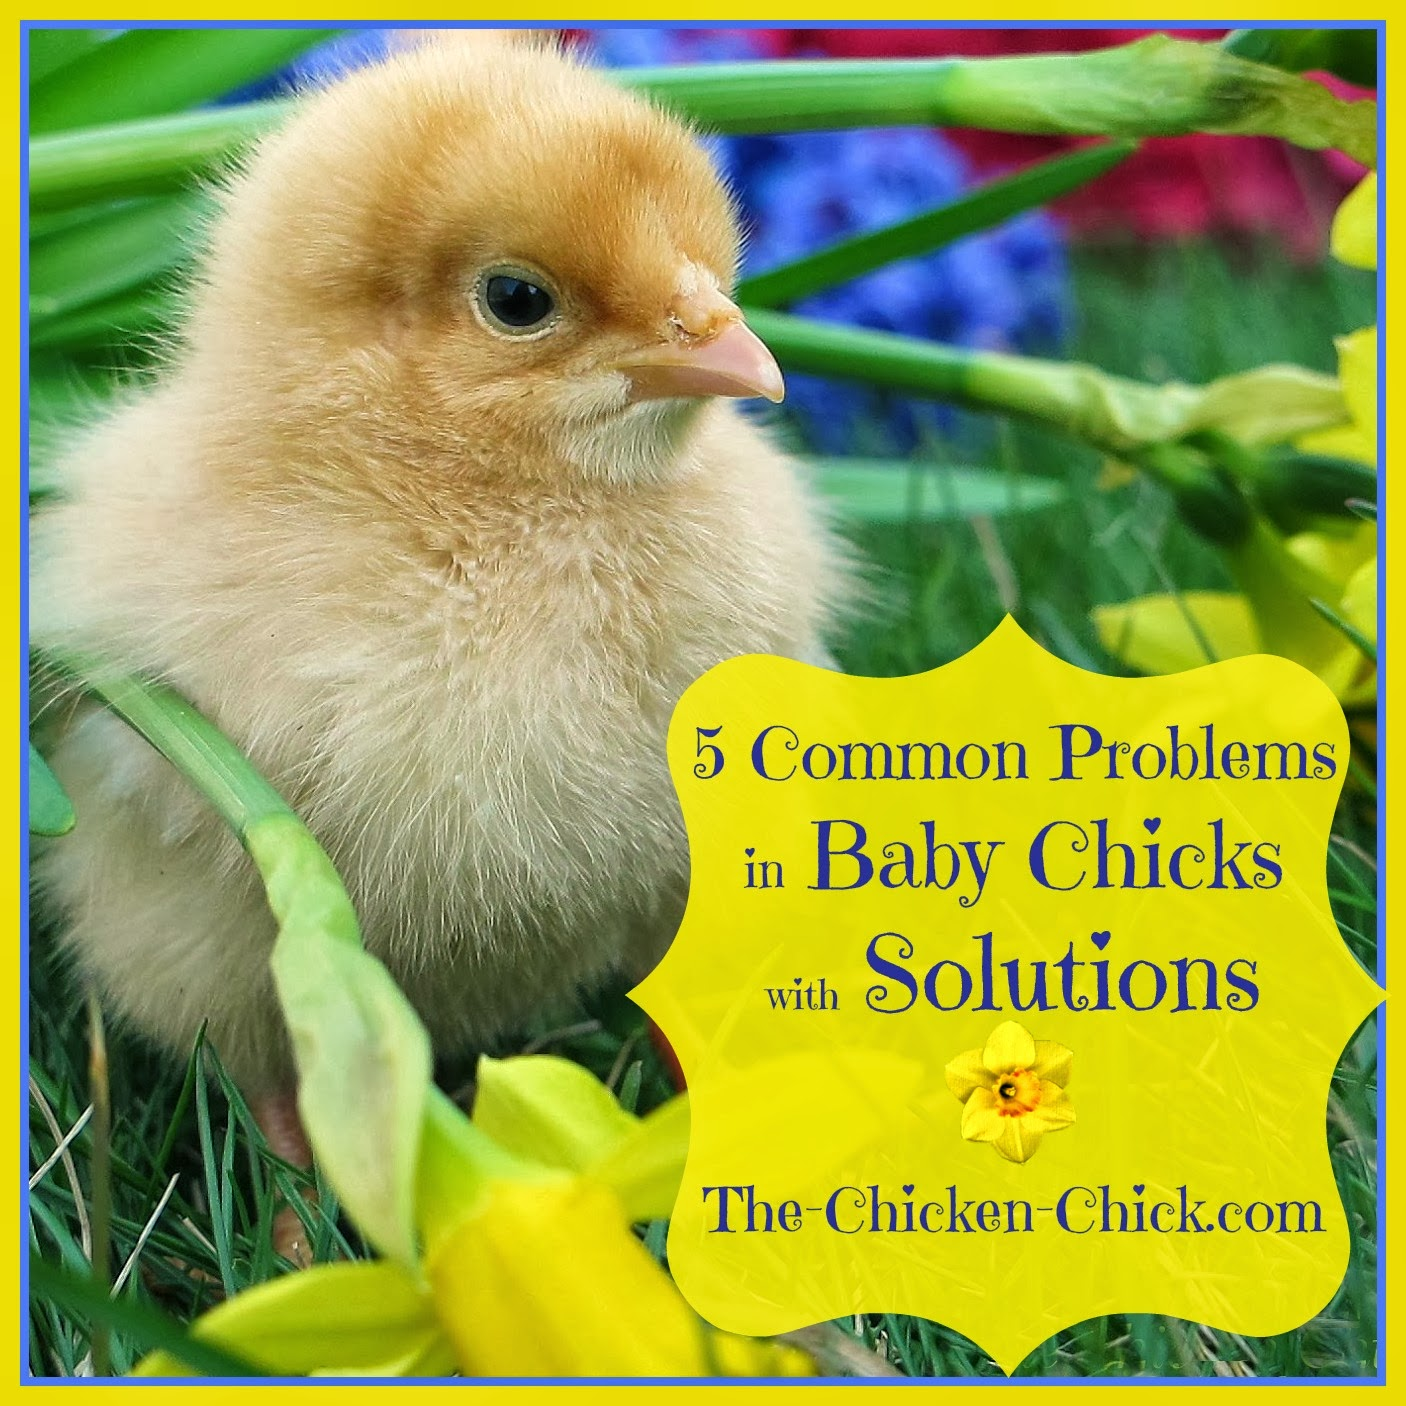 Have your ChickenFirst Aid Kit stocked and ready for action before baby chicks arrive. The five most common problems in baby chicks are all easily treated.